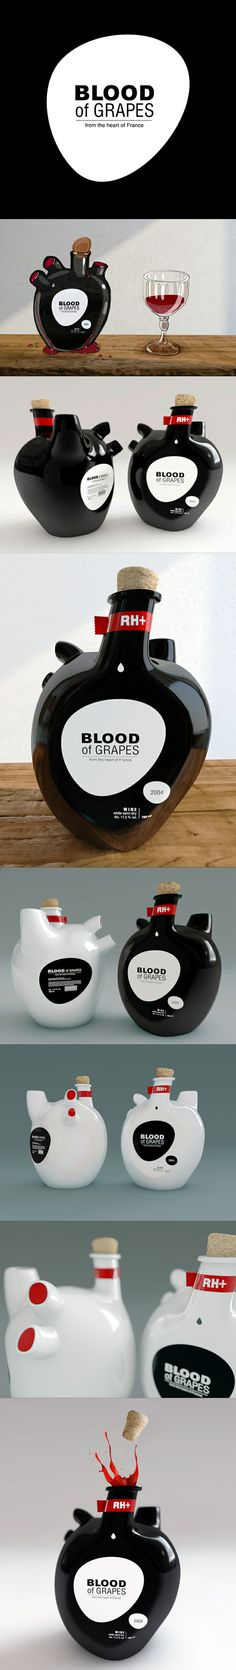 This is great. Unique packaging | blood of grapes by constantin bolimond